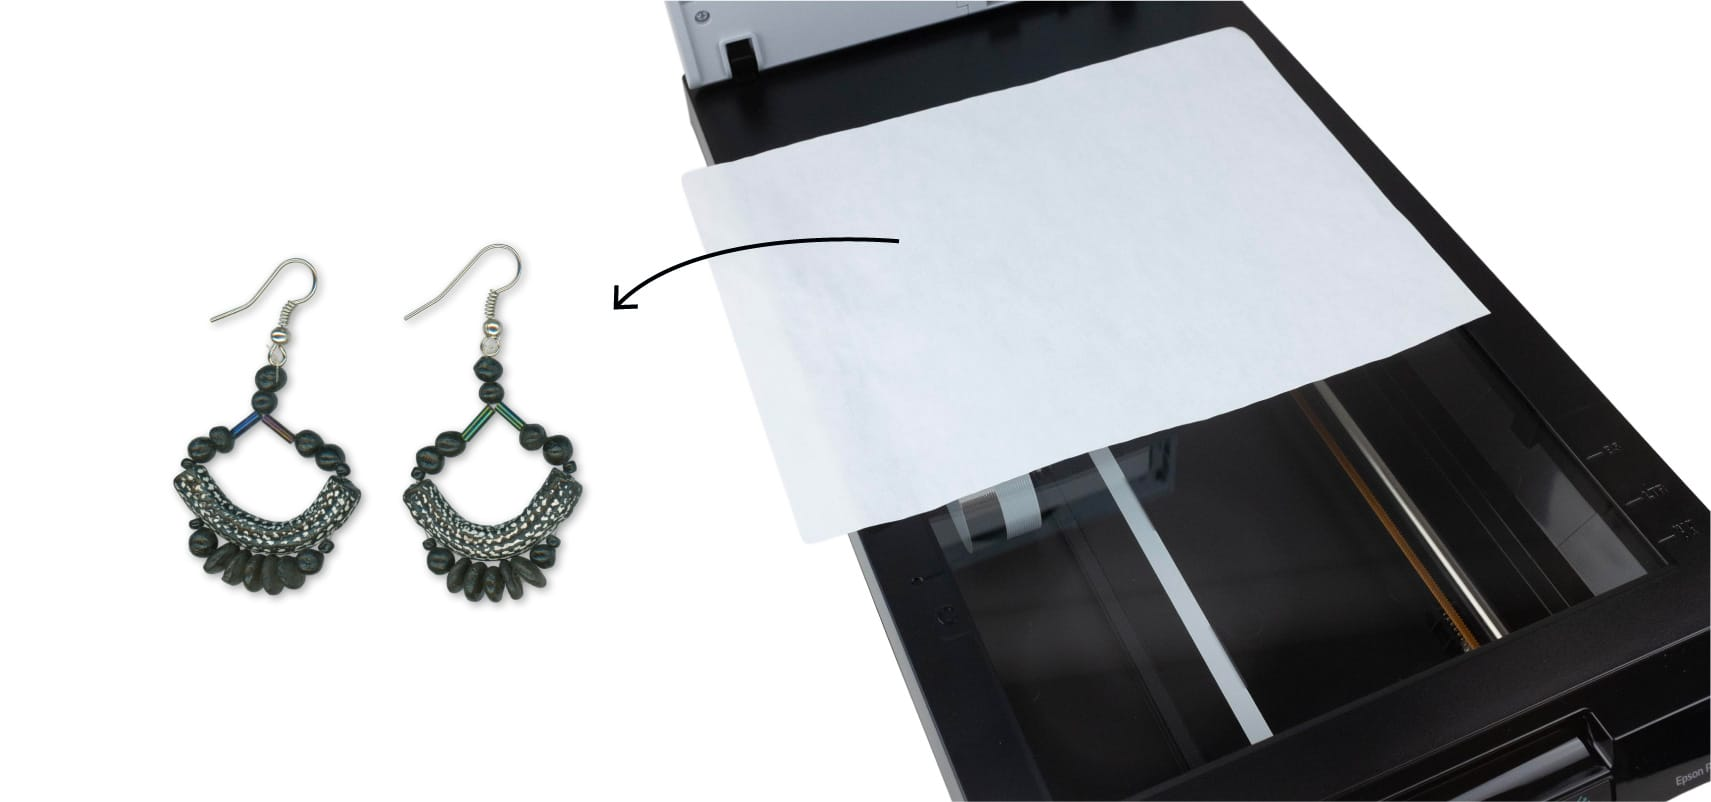 Paper placed on earrings on scanner bed and final image result